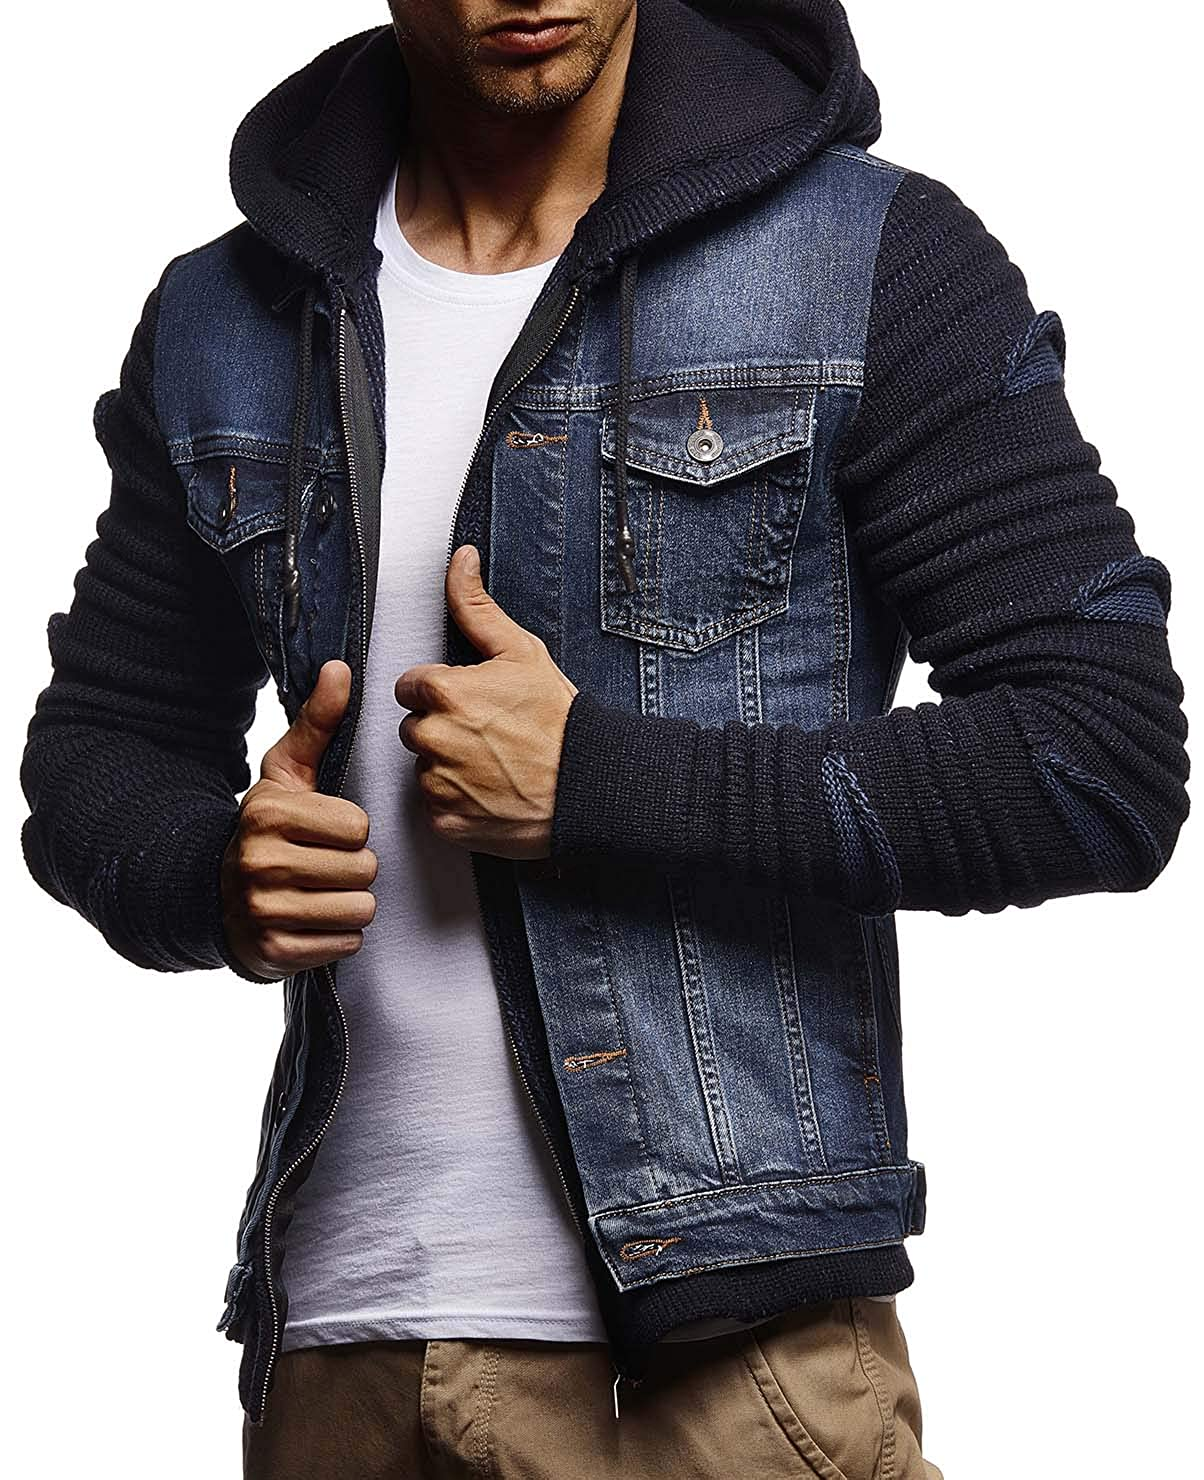 LEIF NELSON Mens Denim Jacket With Knitted Sleeves Jeans Jacket With Hood Stylish Jeans Sweater Hoodie LN5755